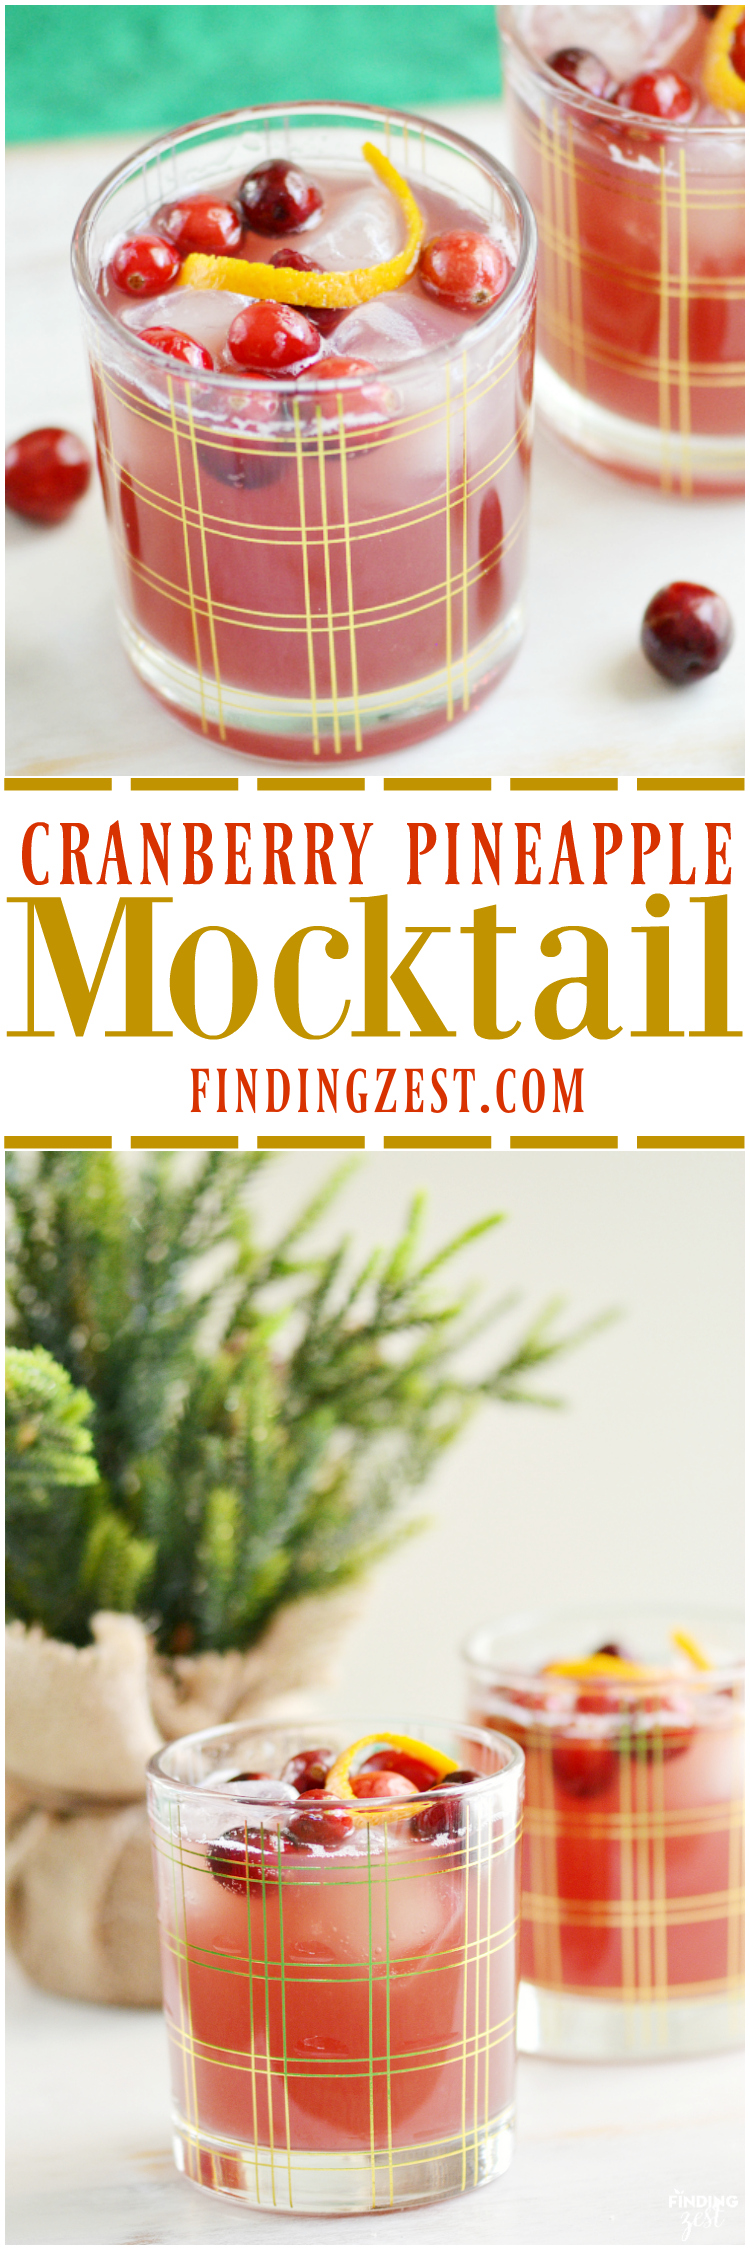 This Cranberry Pineapple Mocktail recipe is the perfect non-alcoholic holiday drink. Both kids and adults will love it!